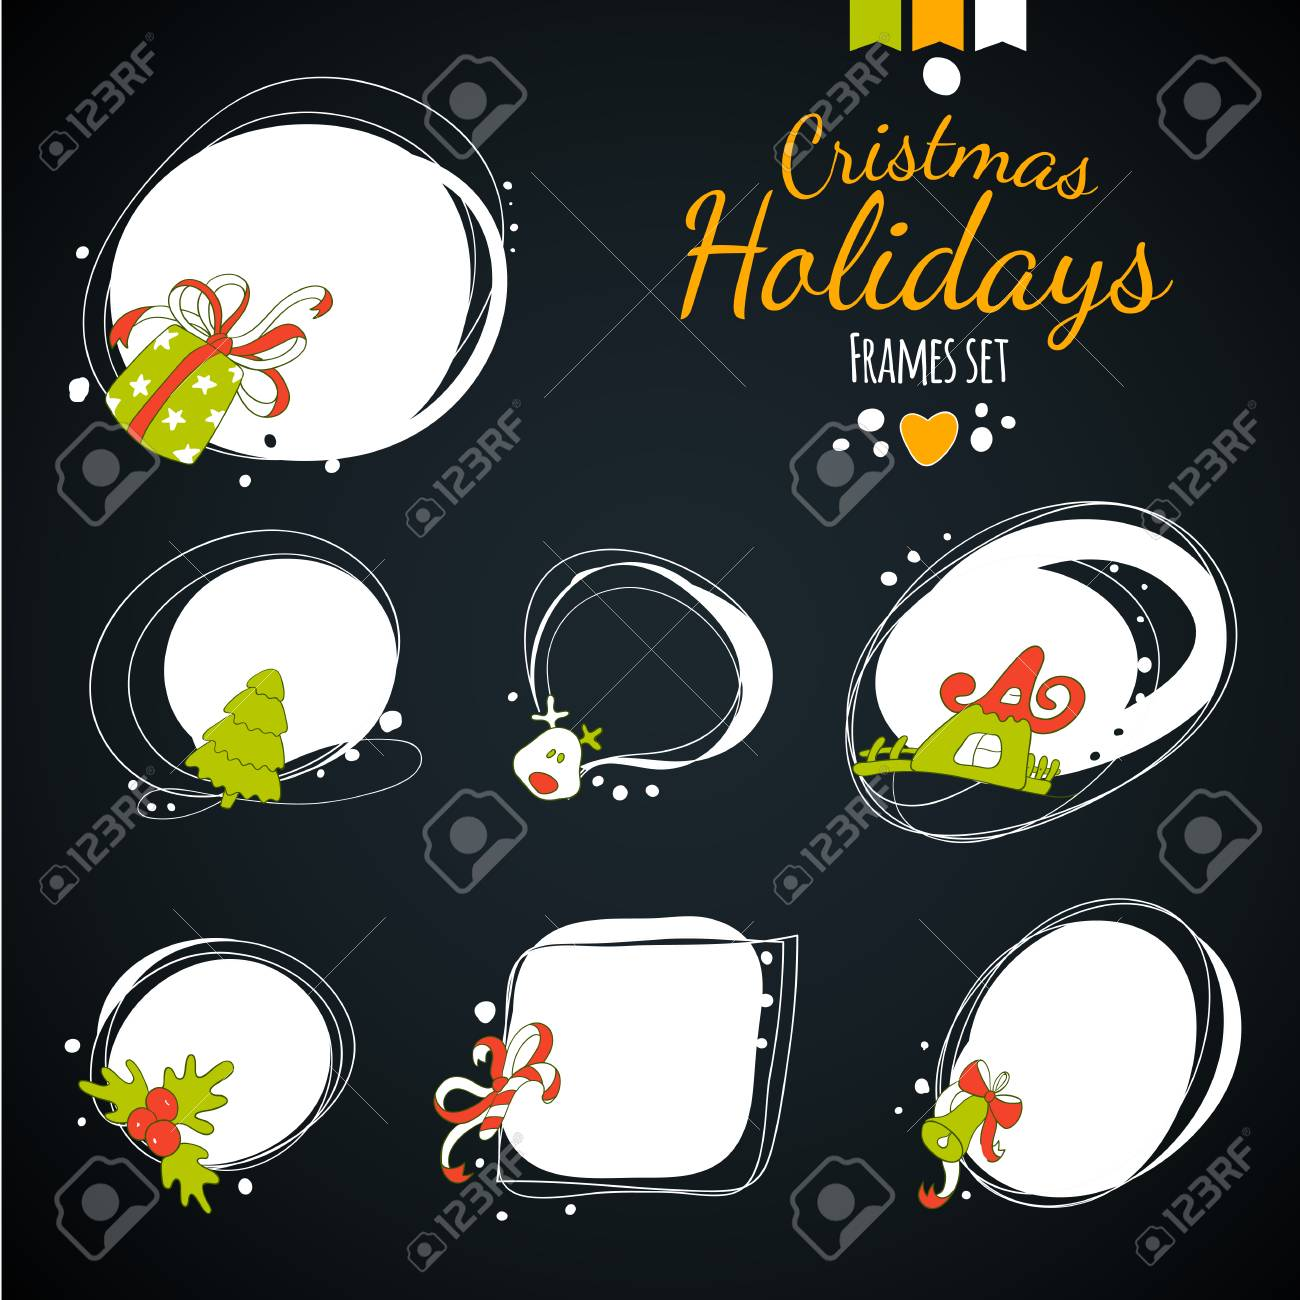 merry christmas drawing decorvintage new year label set happy holidays hand drawing frames